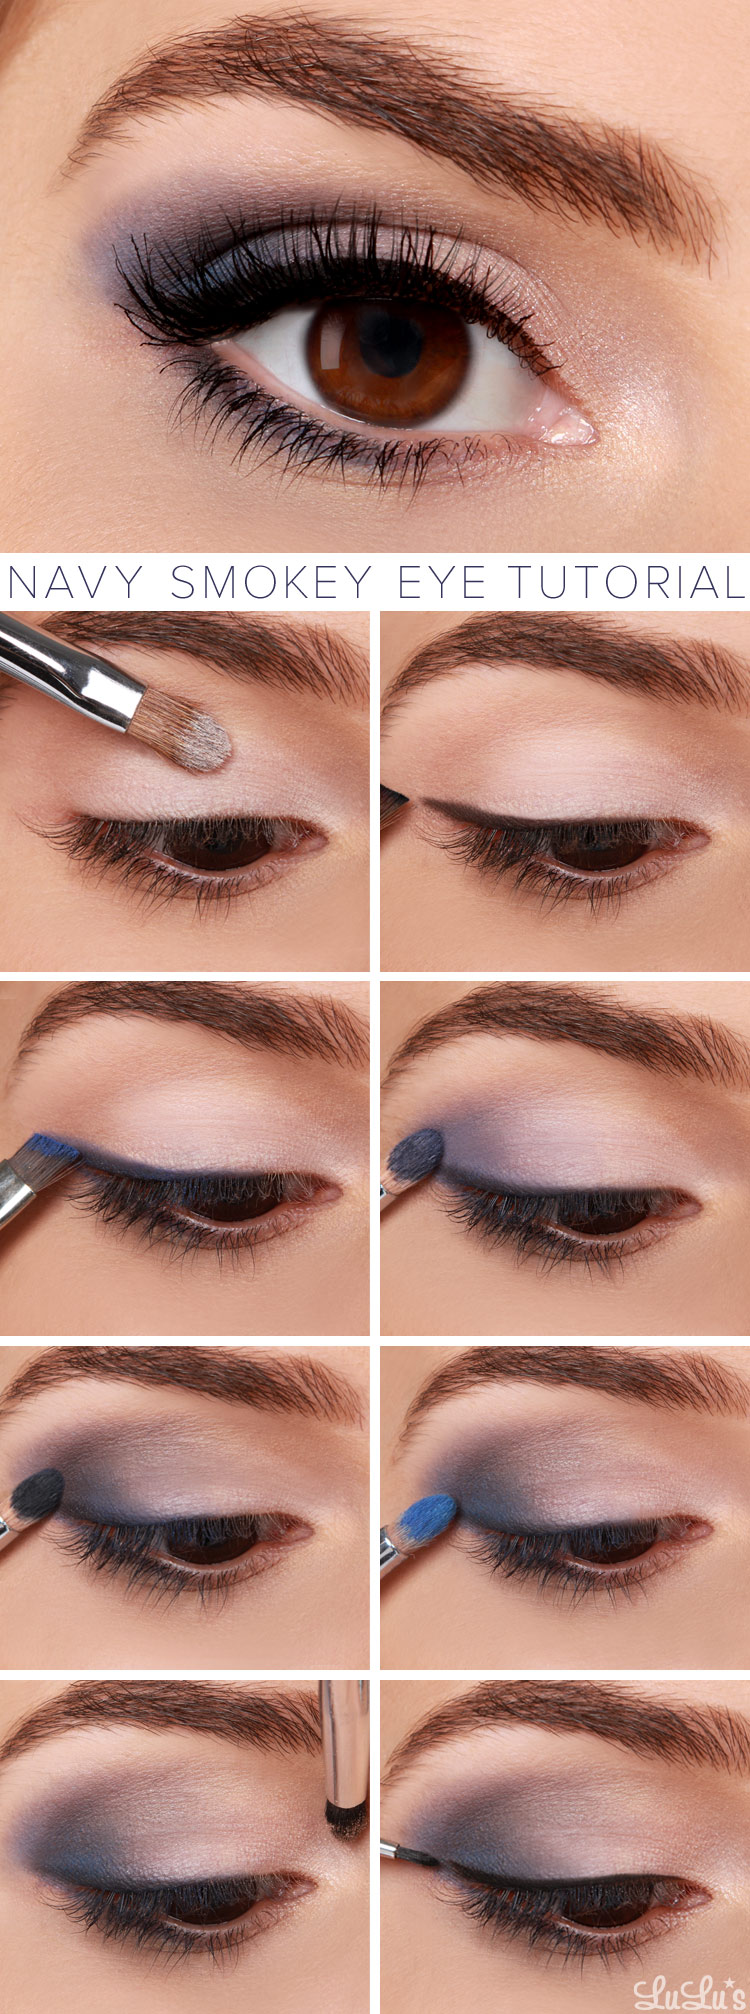 Lulus how to navy smokey eye makeup tutorial lulus fashion blog lulus how to navy smokey eye makeup tutorial at lulus baditri Gallery